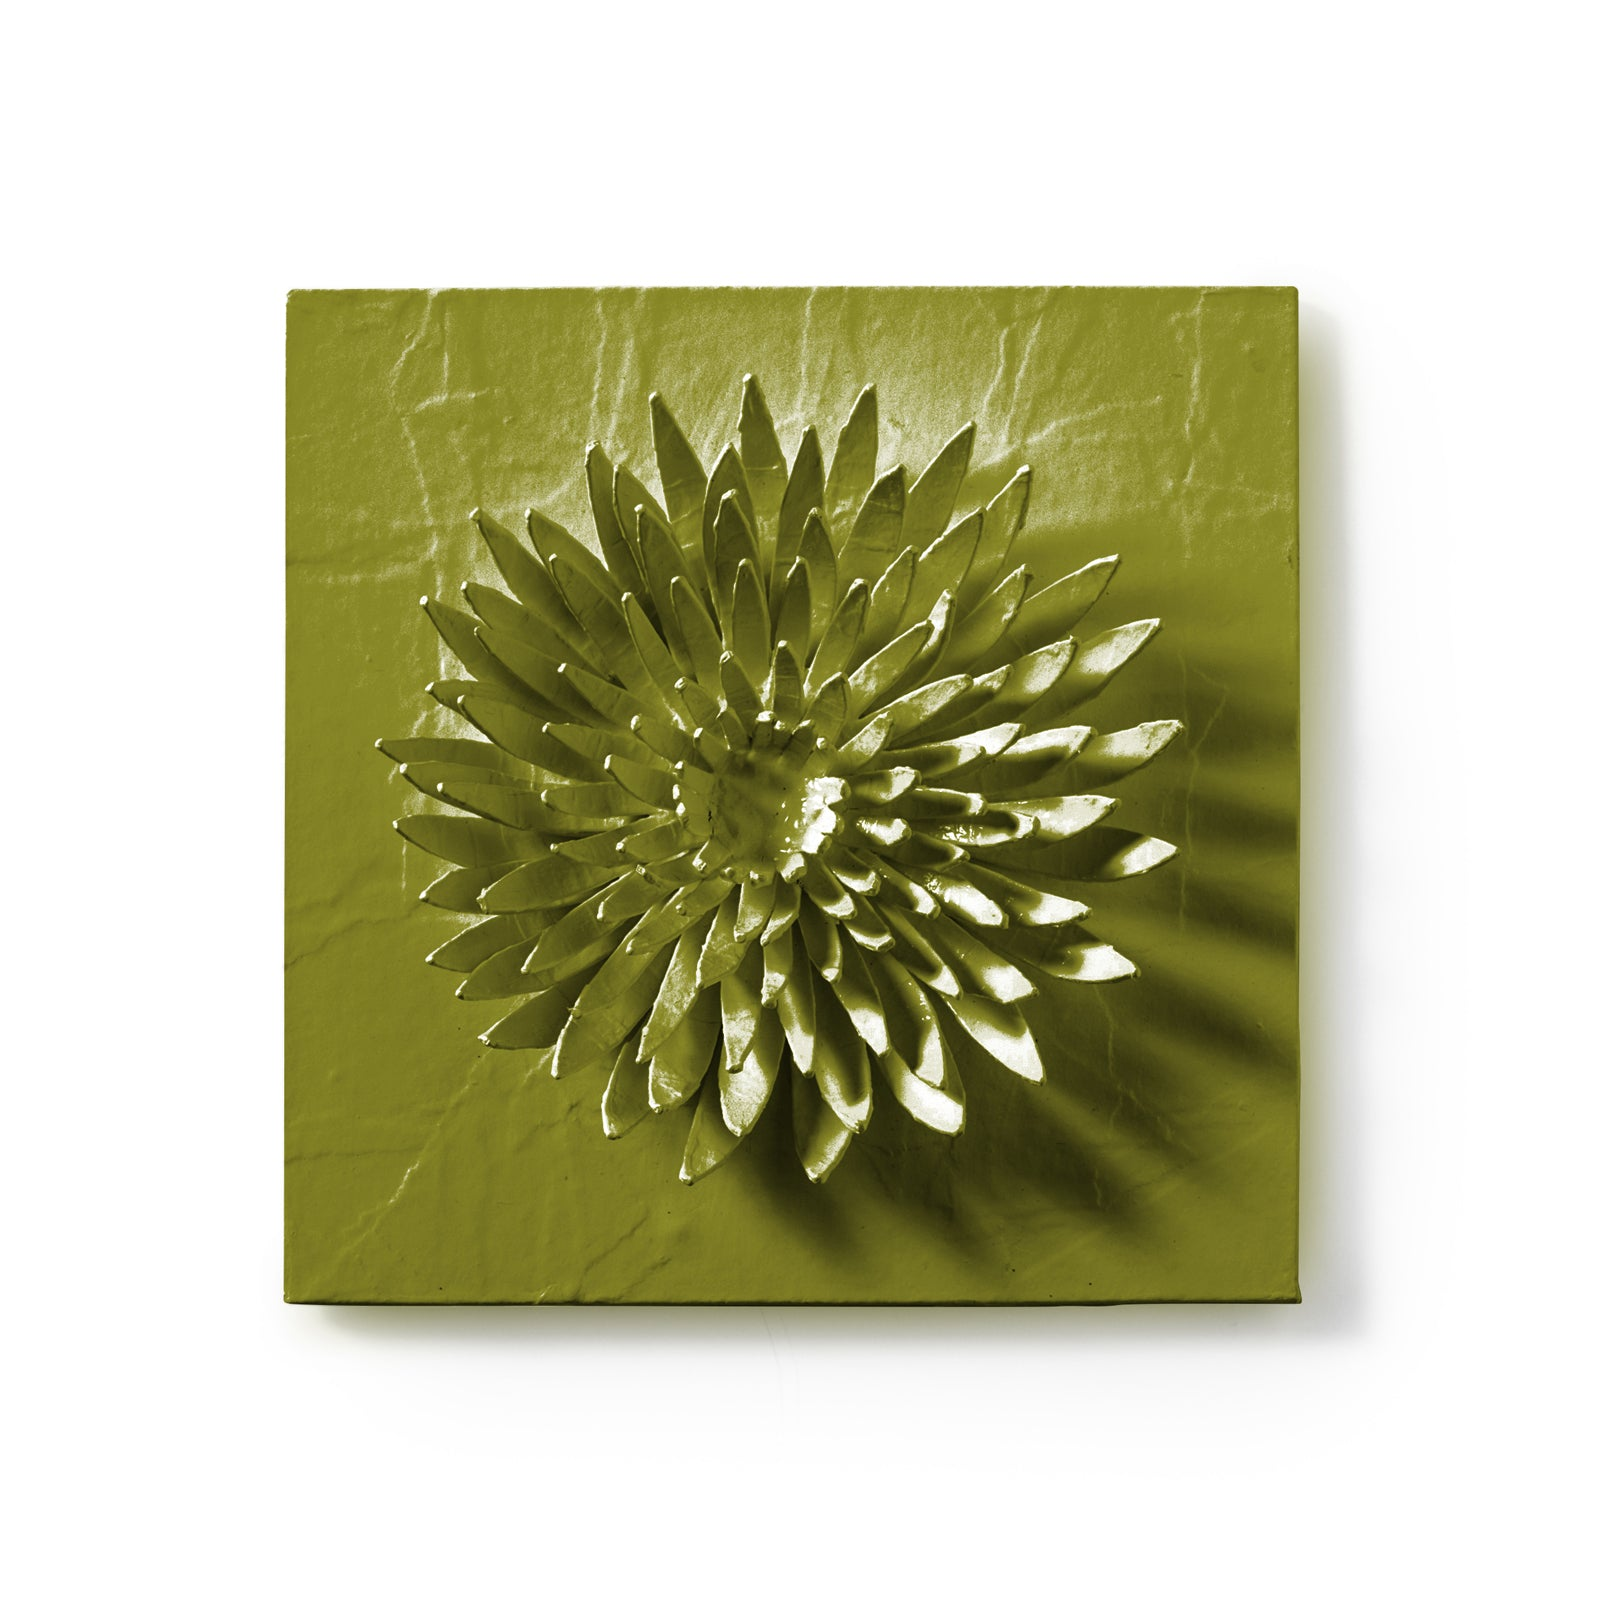 Chrysanthemum Flower Wall Tile by Stray Dog Designs